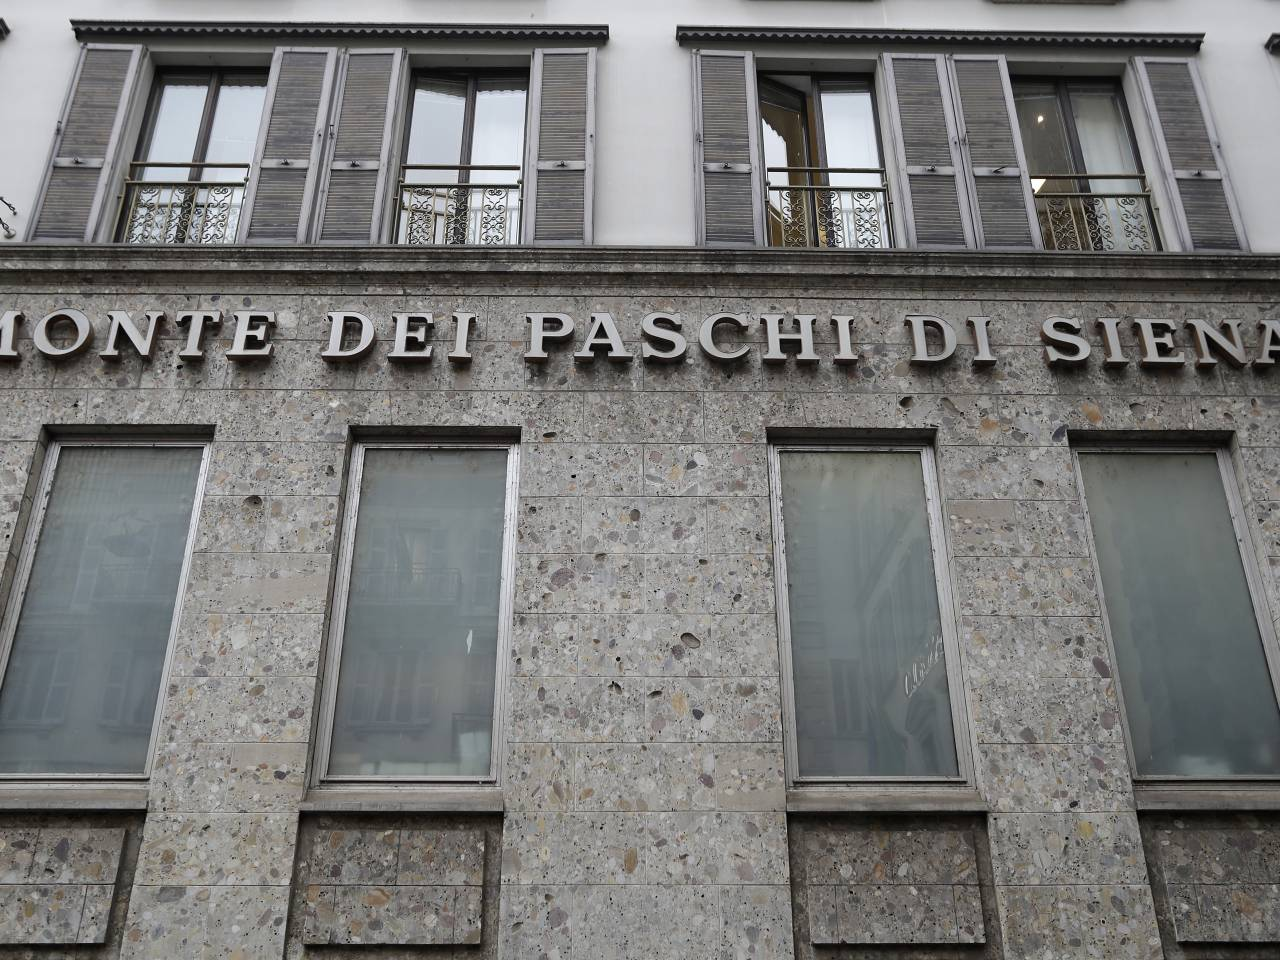 European Central Bank should discuss views on Monte Paschi with Italy: PM Gentiloni